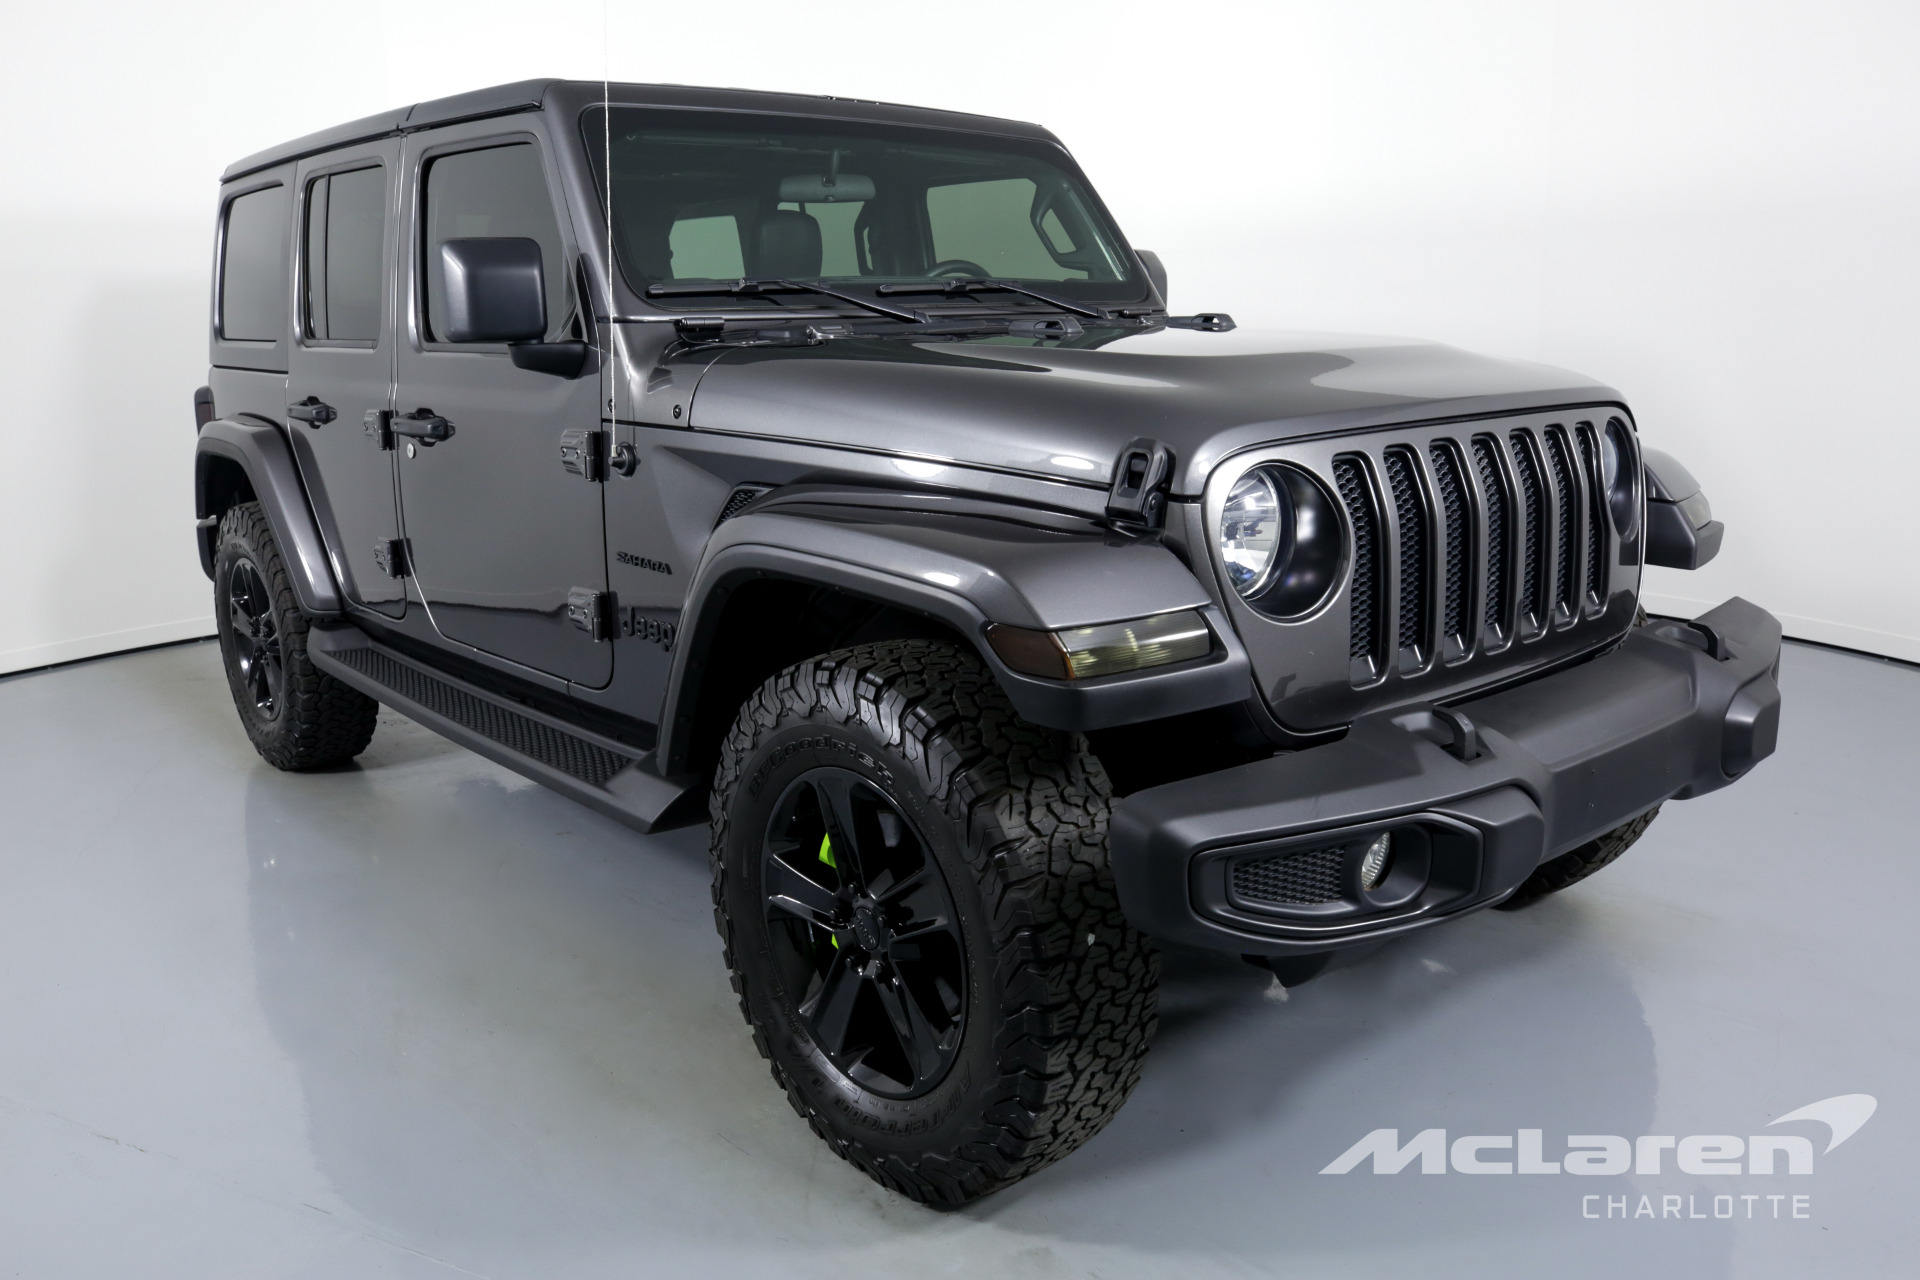 Used Jeep Wrangler For Sale Nc >> Used 2018 Jeep Wrangler Unlimited Sahara For Sale ($39,975 ...